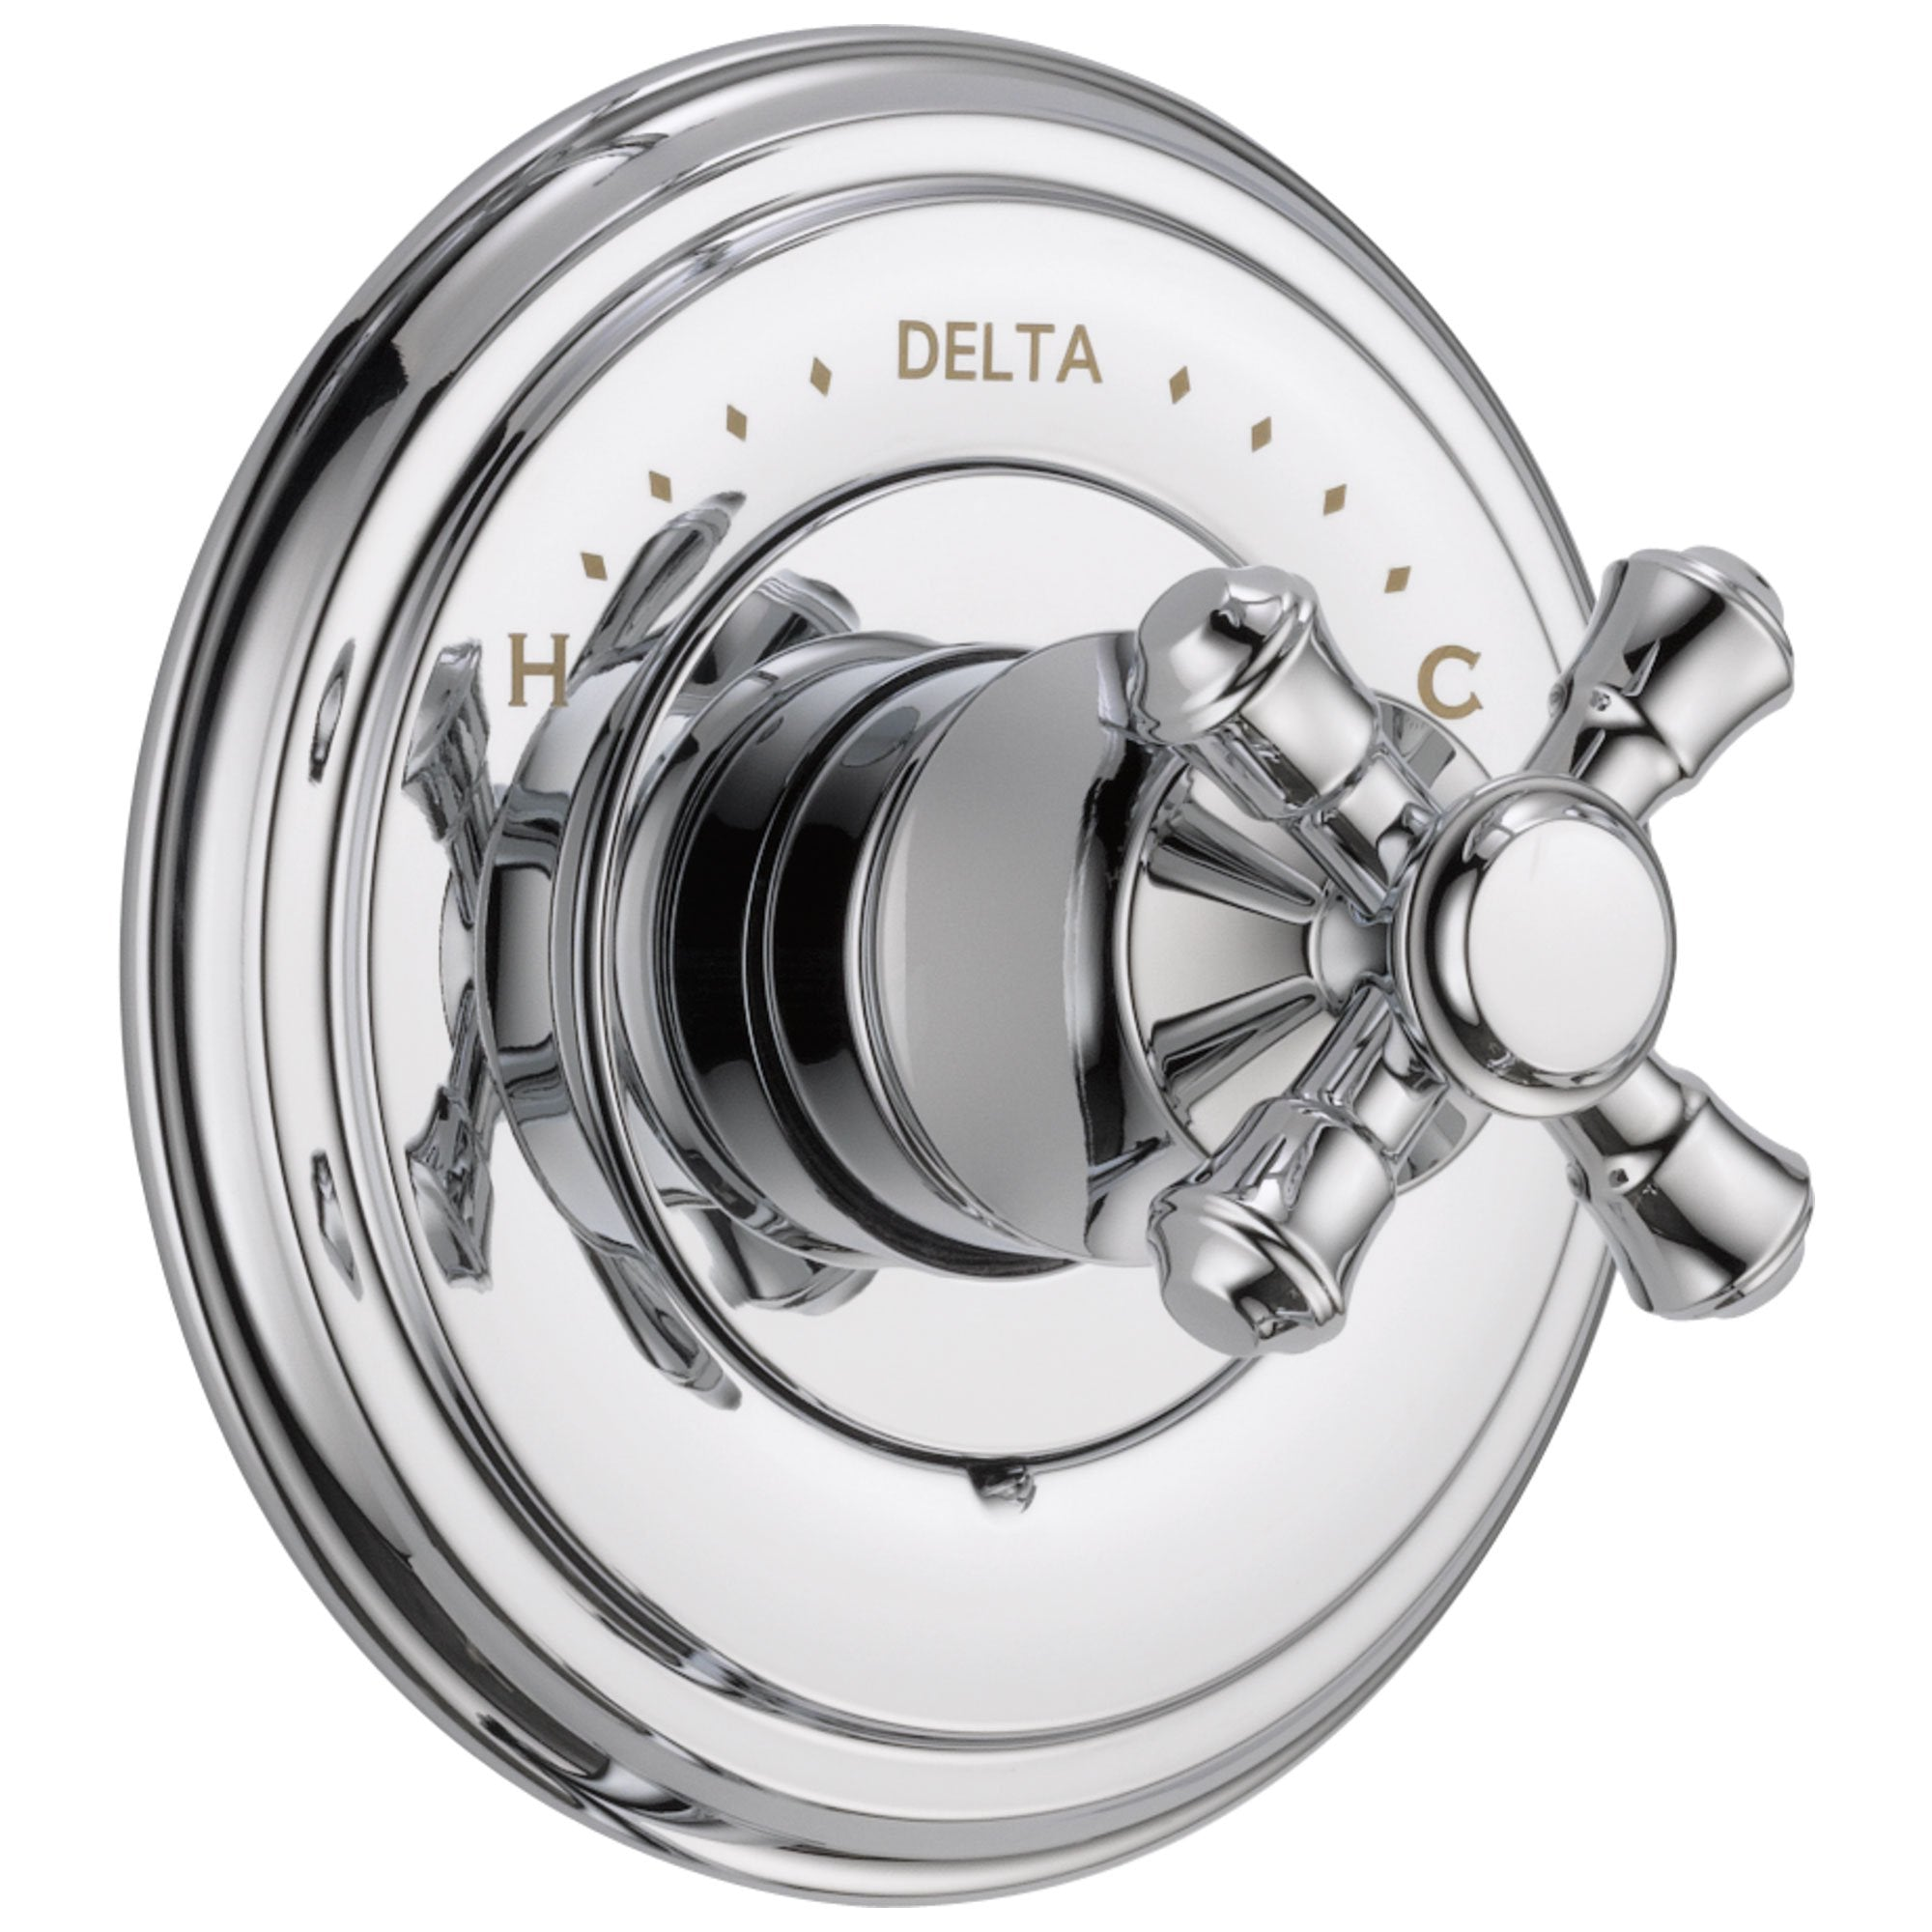 Delta Shower Valve.Delta Cassidy Collection Chrome Finish Monitor 14 Series Shower Faucet Control Complete Item With Single Cross Handle And Rough In Valve Without Stops